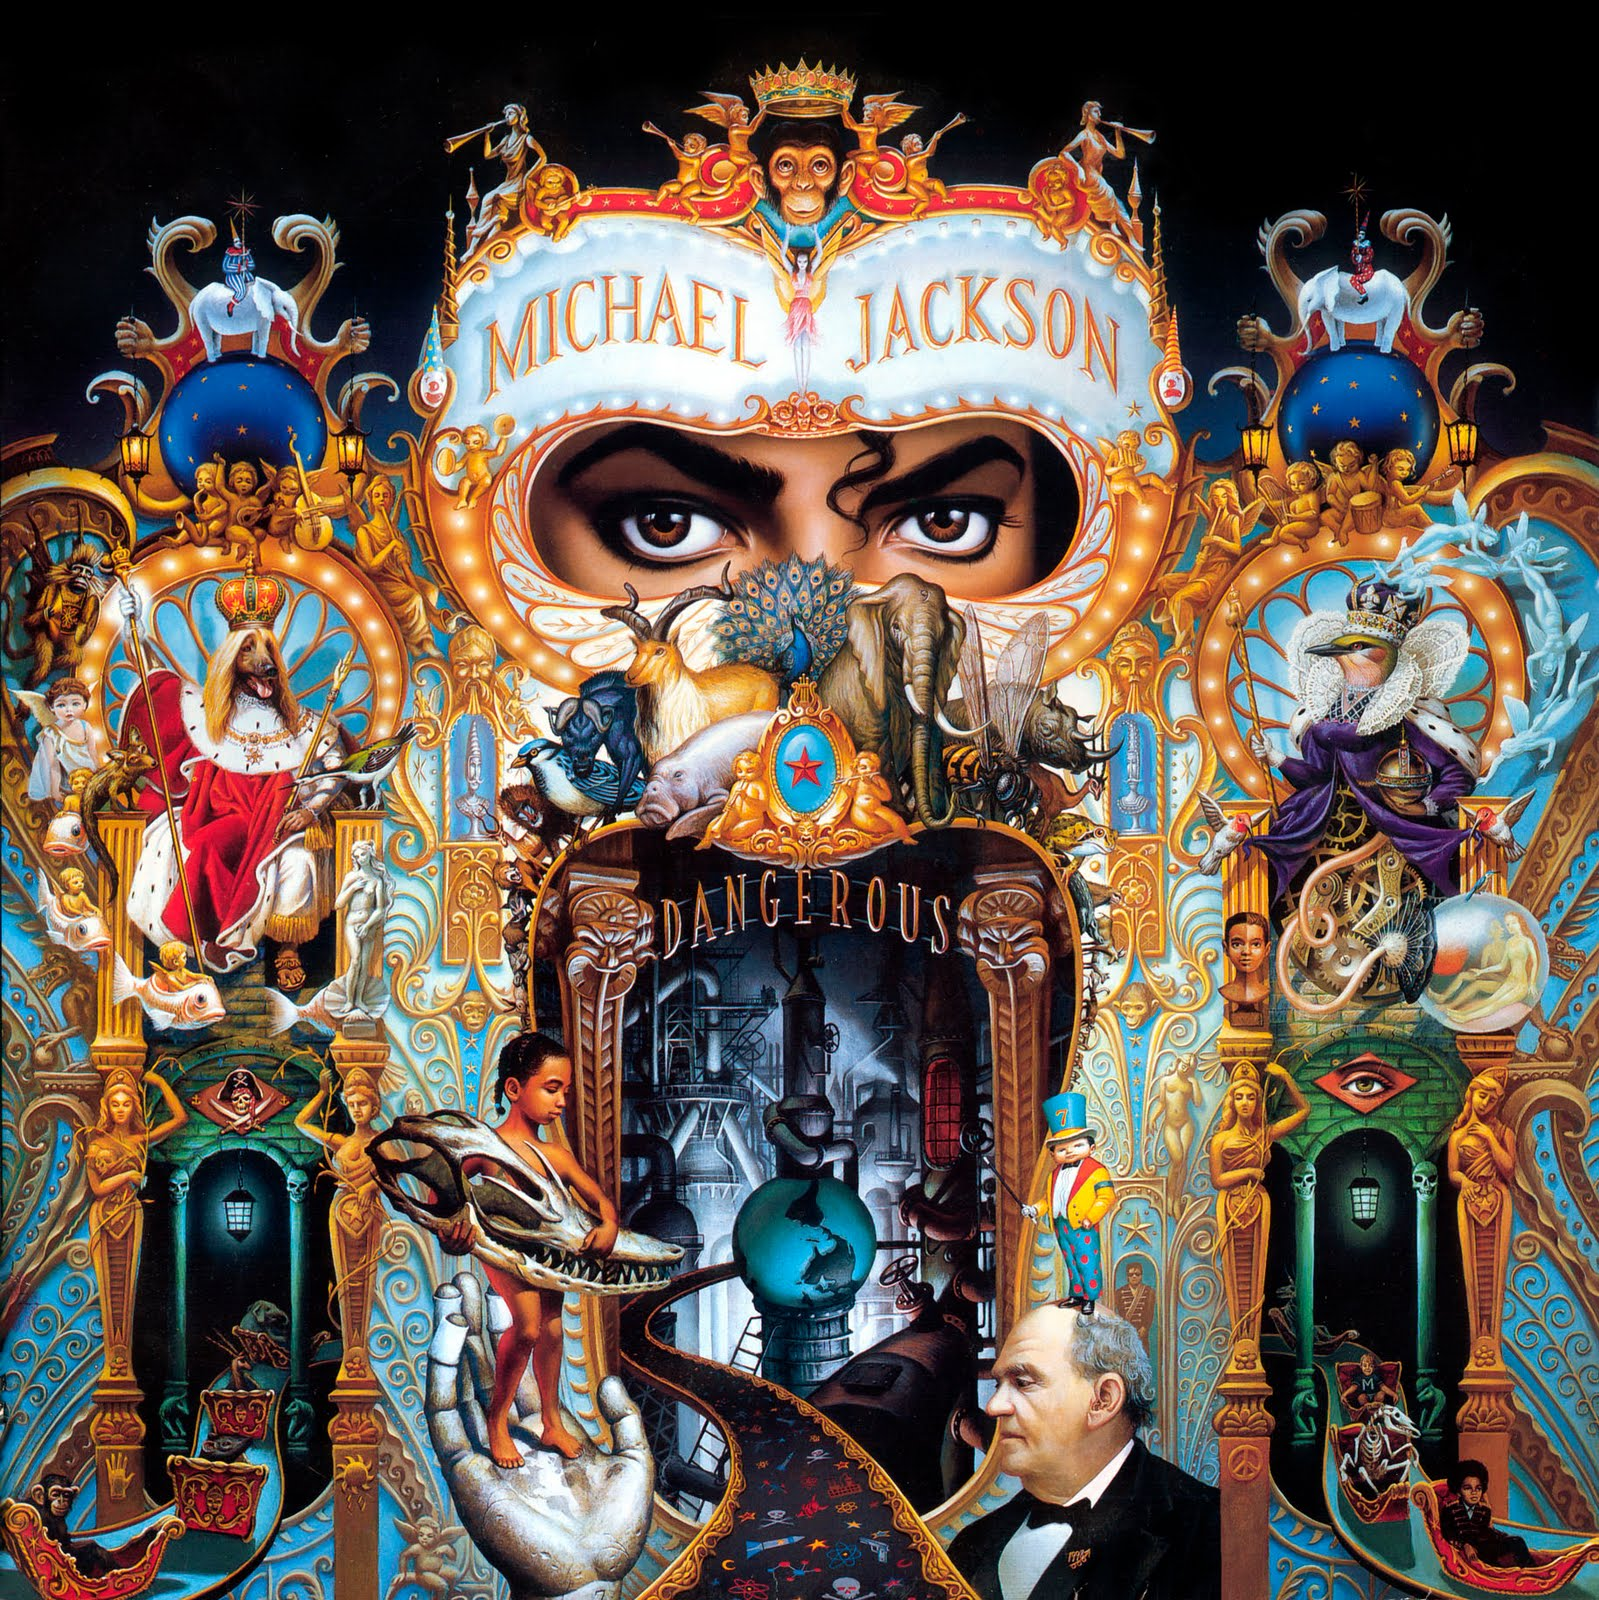 audio review : Dangerous ( album ) ... Michael Jackson